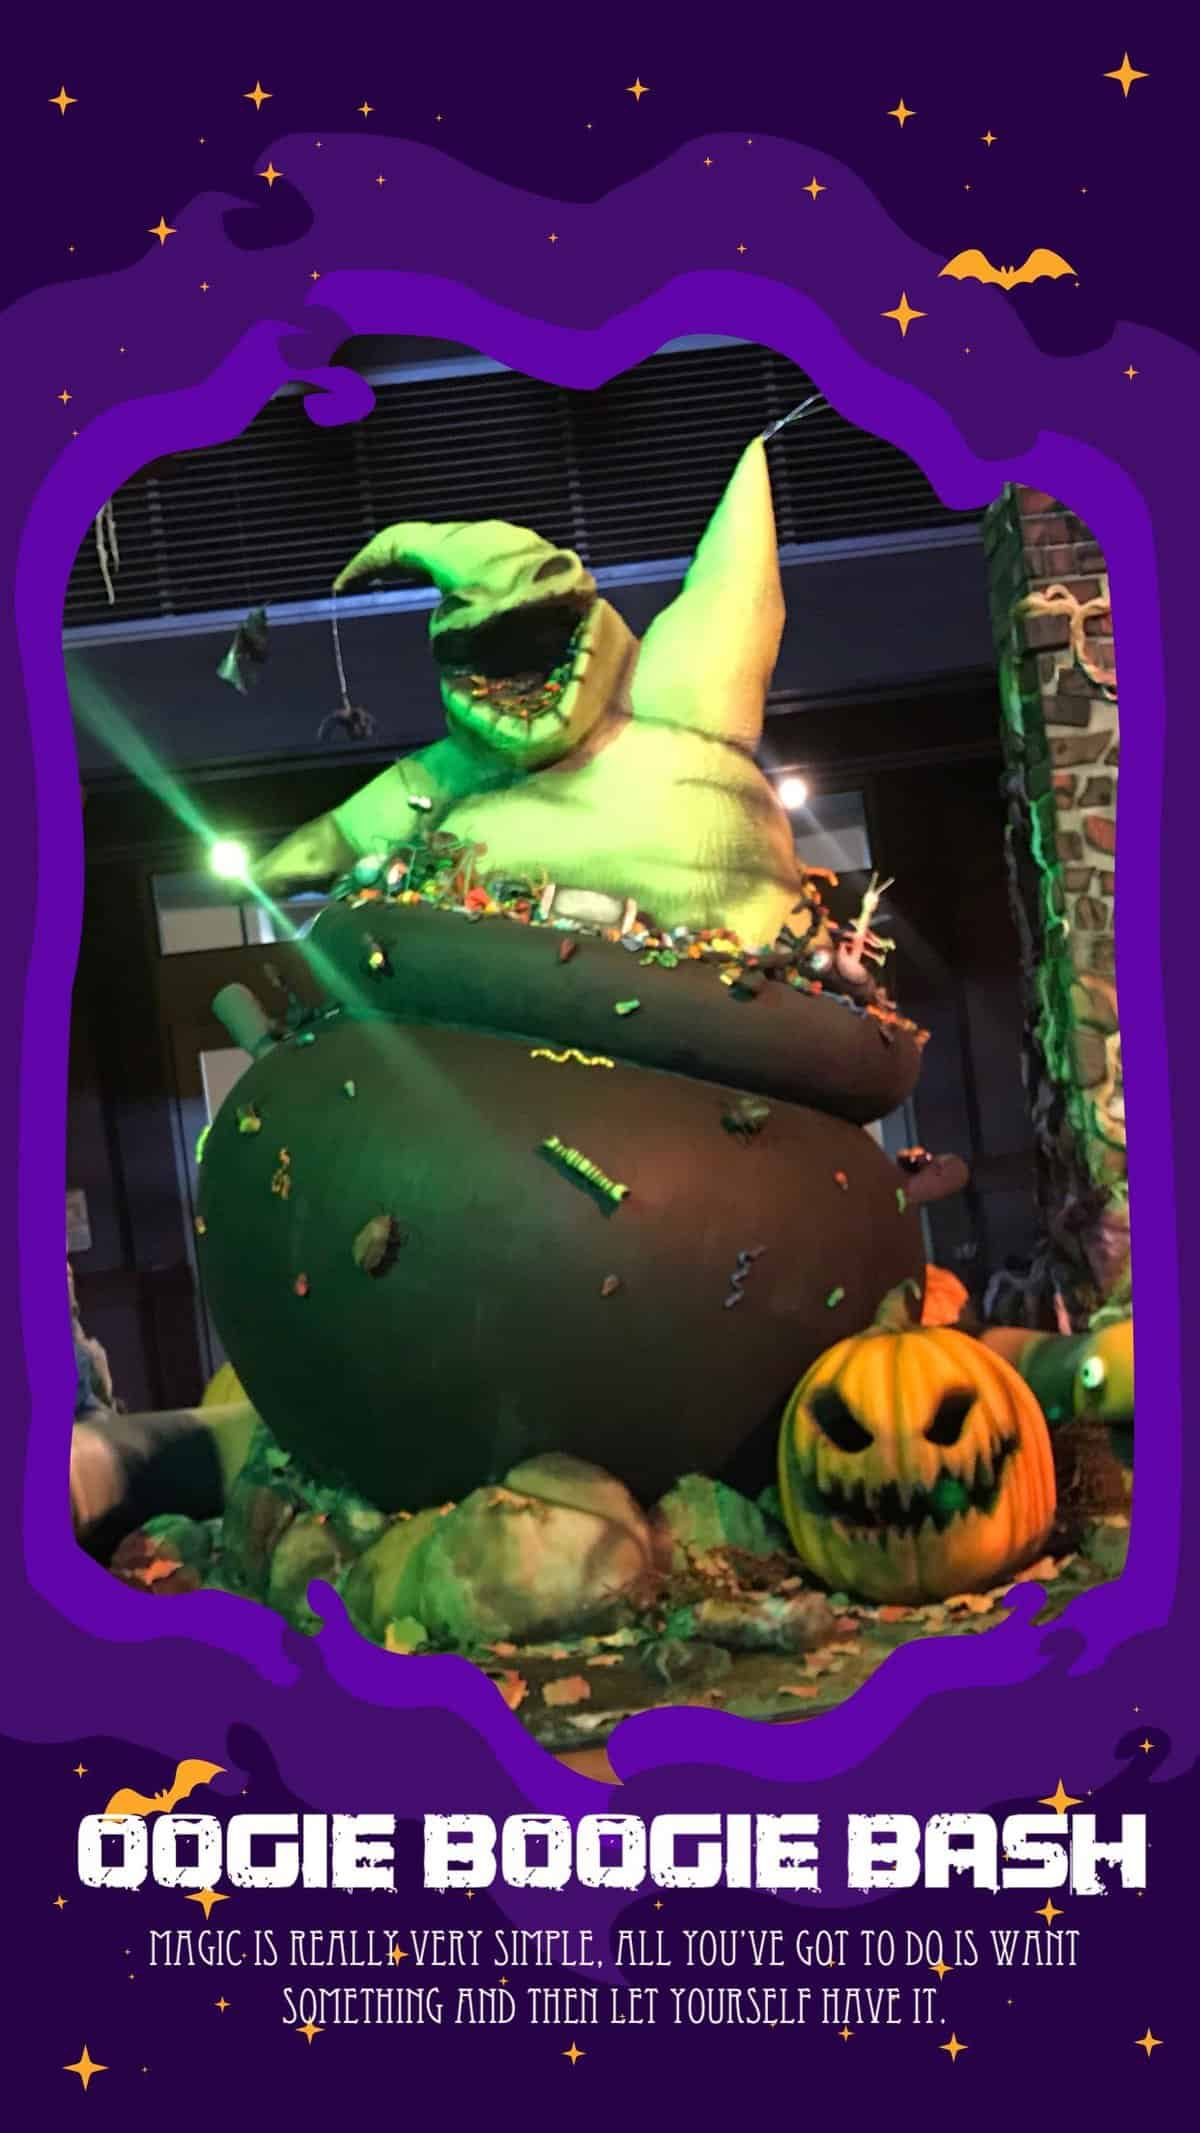 Find out everything you need to know about the Oogie boogie bash